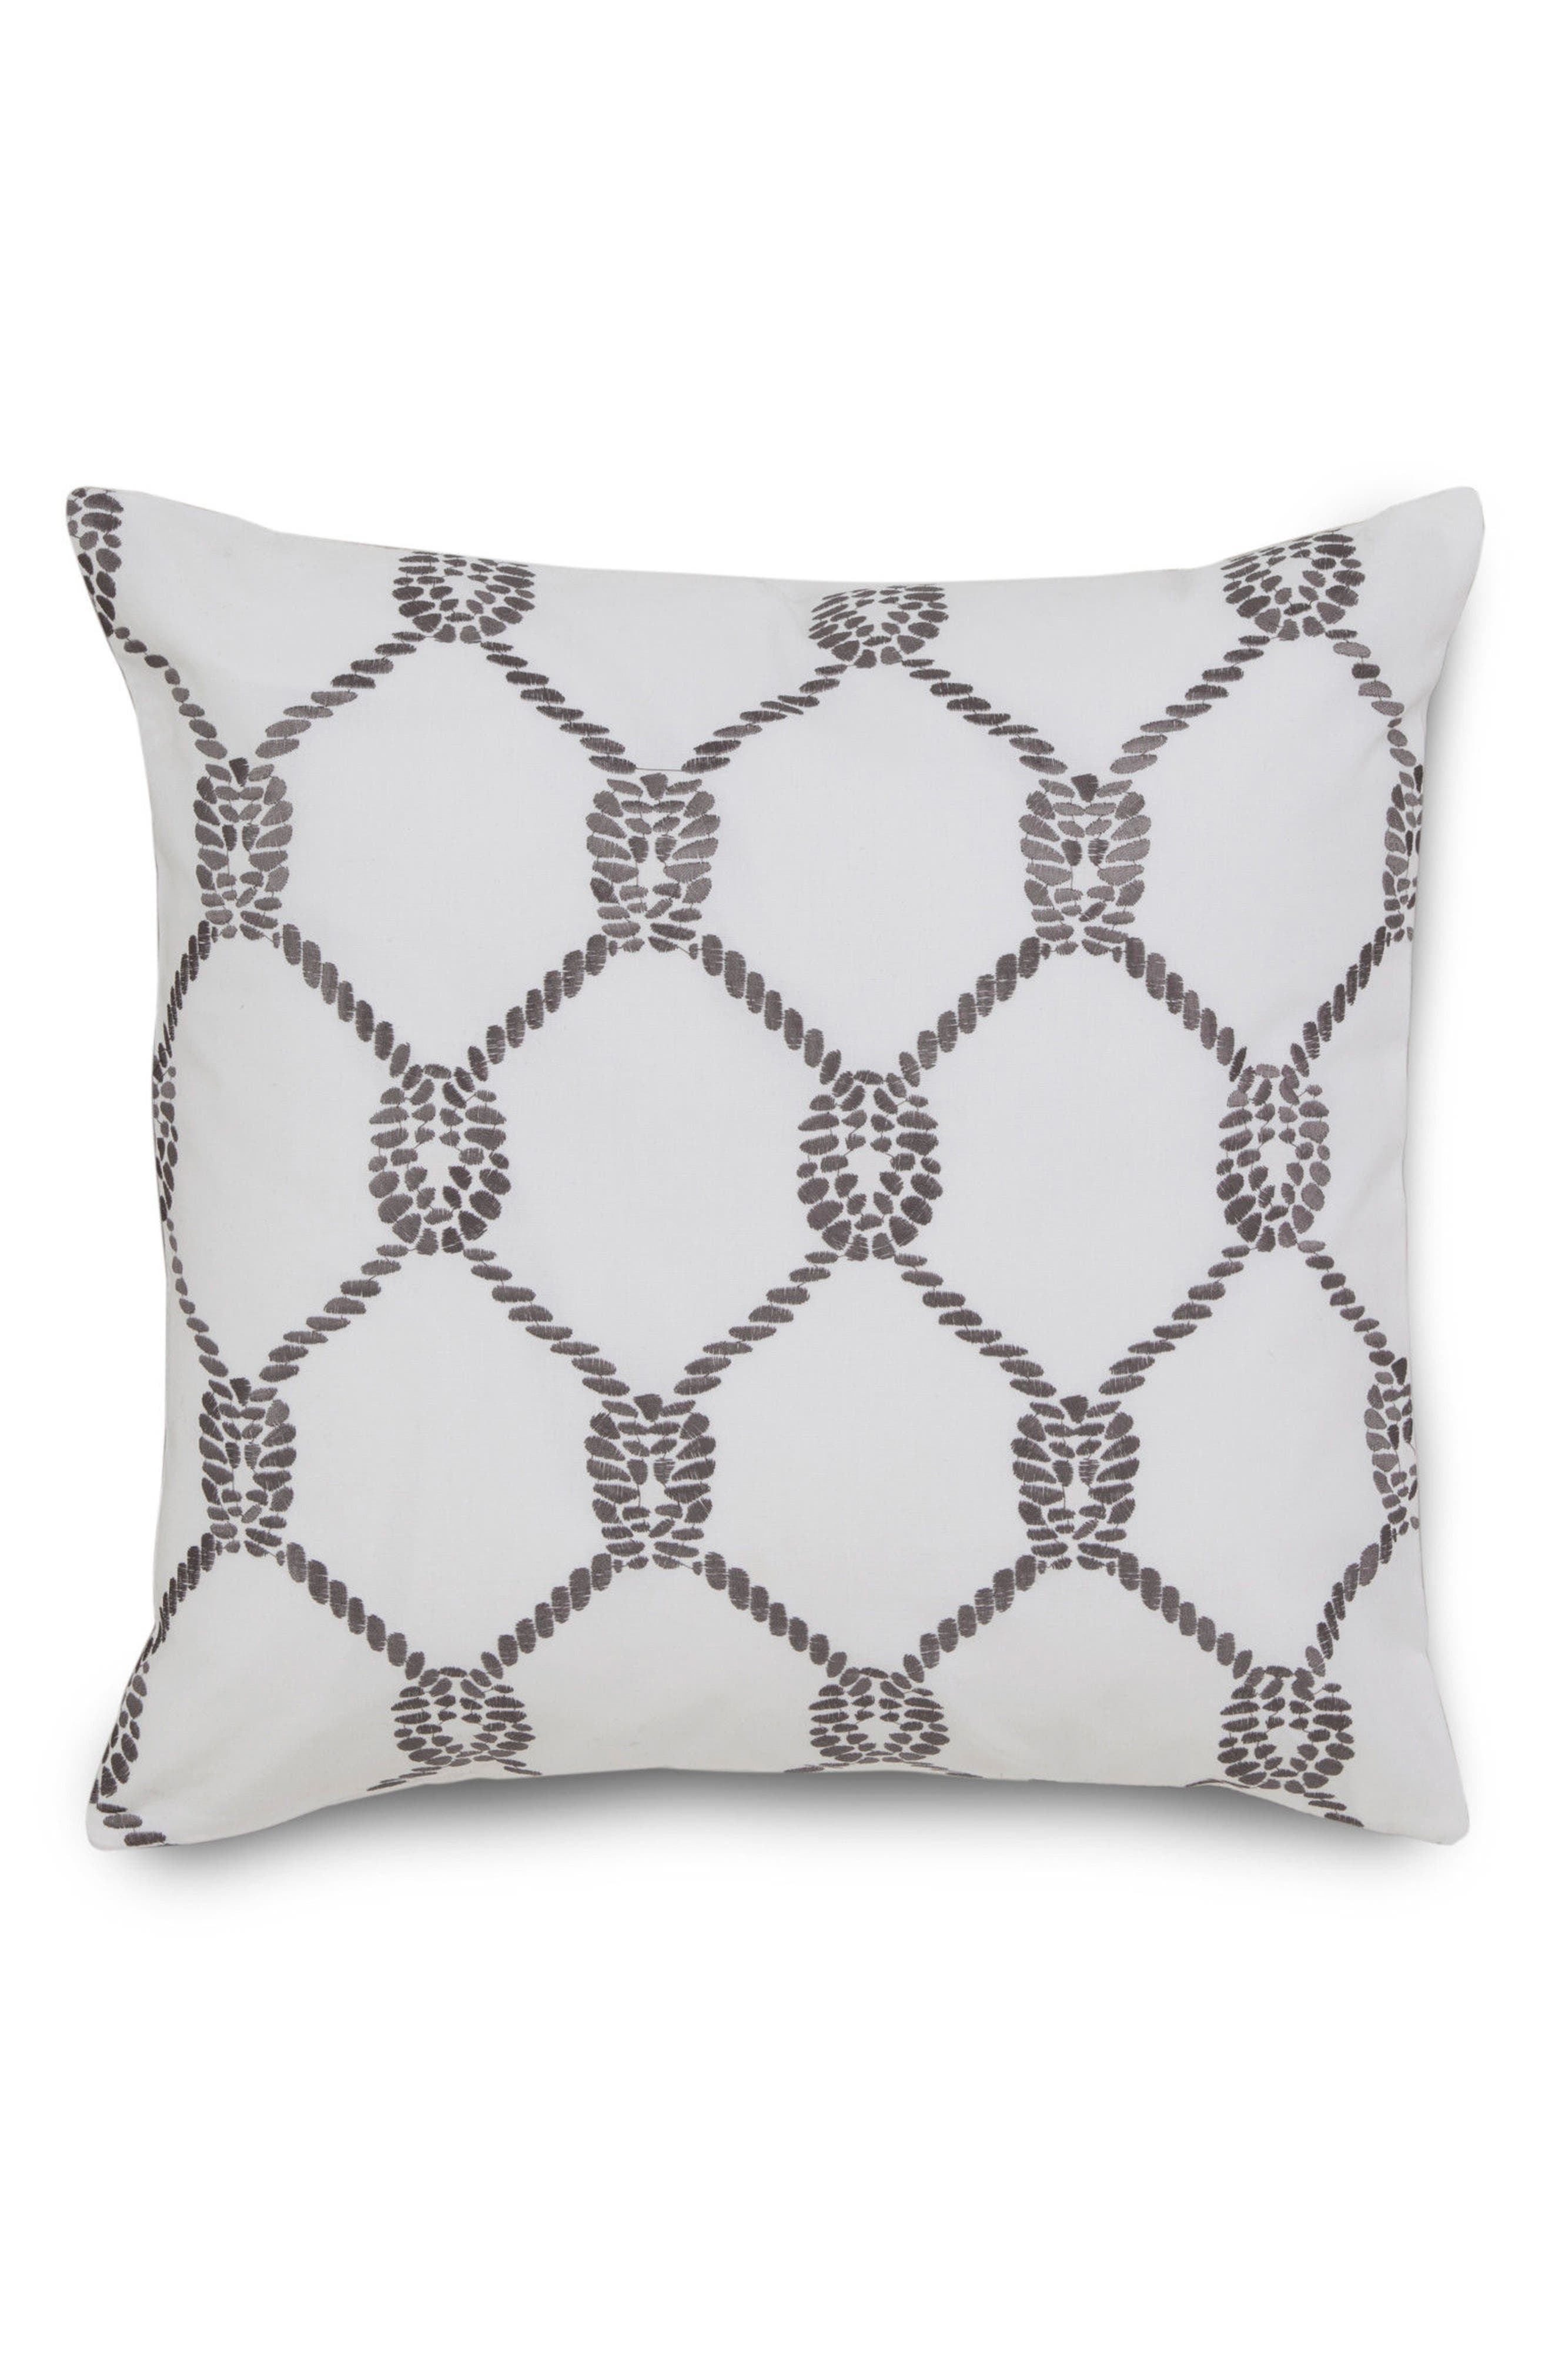 Breakwater Embroidered Rope Accent Pillow,                         Main,                         color, Nautical Grey